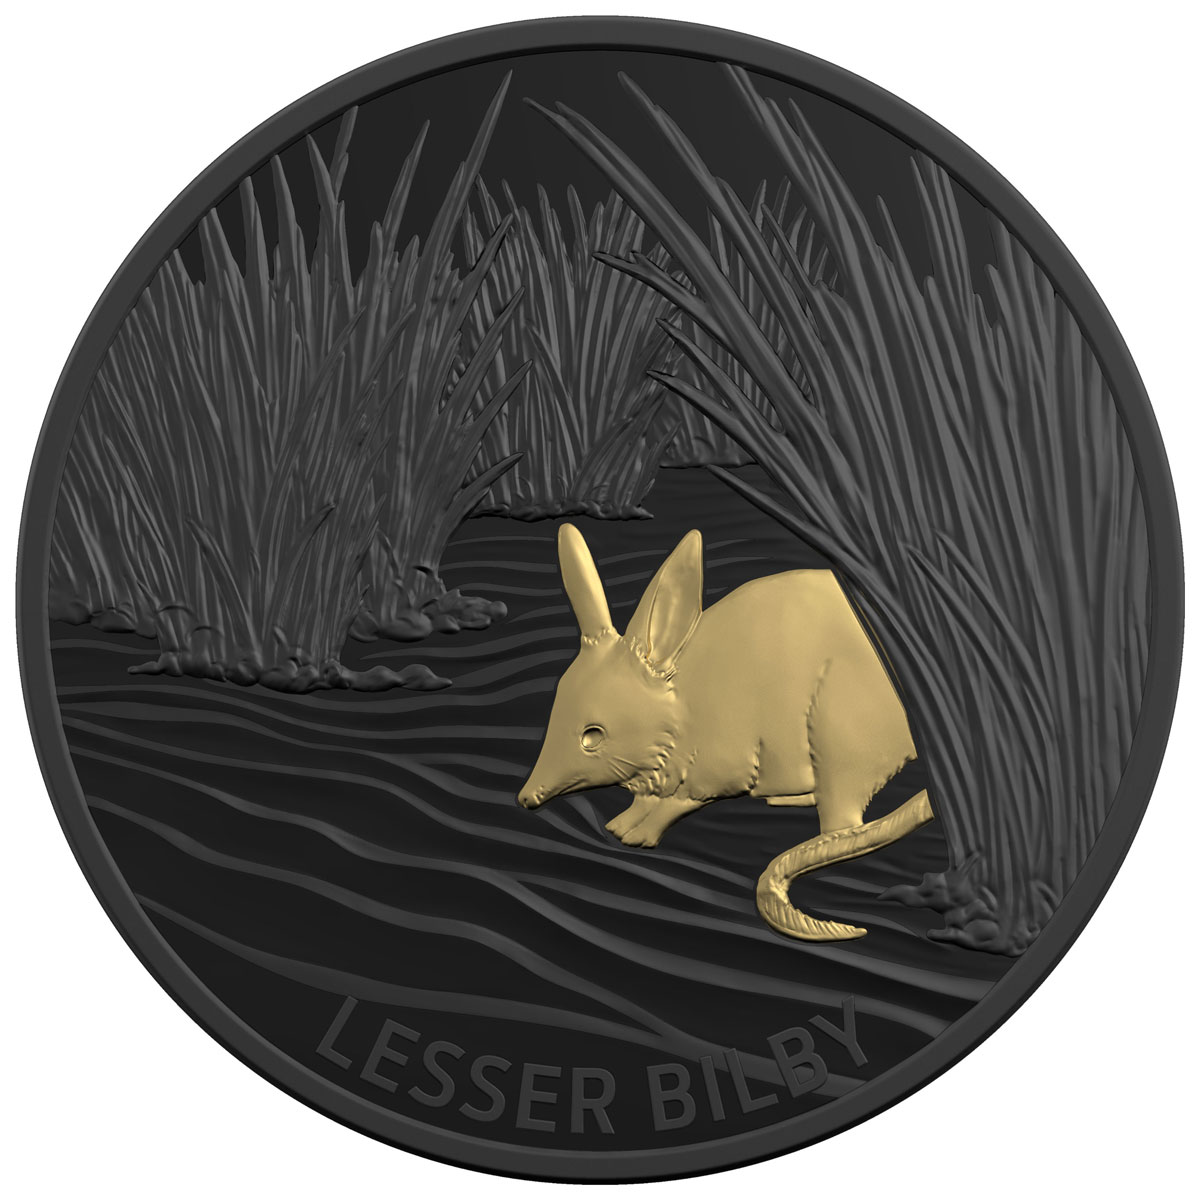 2019 Australia Echoes of Australia - Lesser Bilby 1 oz Silver Nickel-Plated Proof $5 Coin GEM Proof OGP